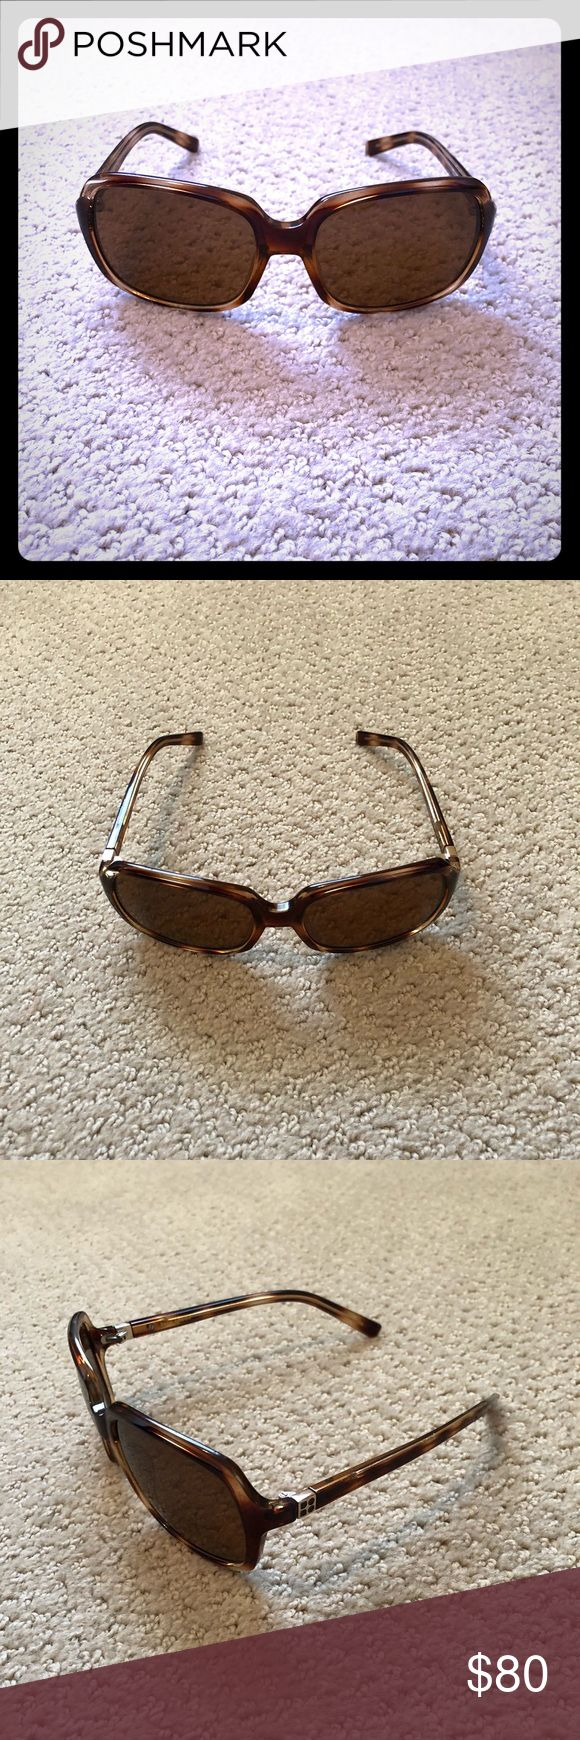 Kate Spade tortoise shell sunglasses These are perfect every day sunglasses. The tortoise shell is versatile and goes with everything. They're a rounded rectangle shape and the lenses have a brown tint. kate spade Accessories Sunglasses